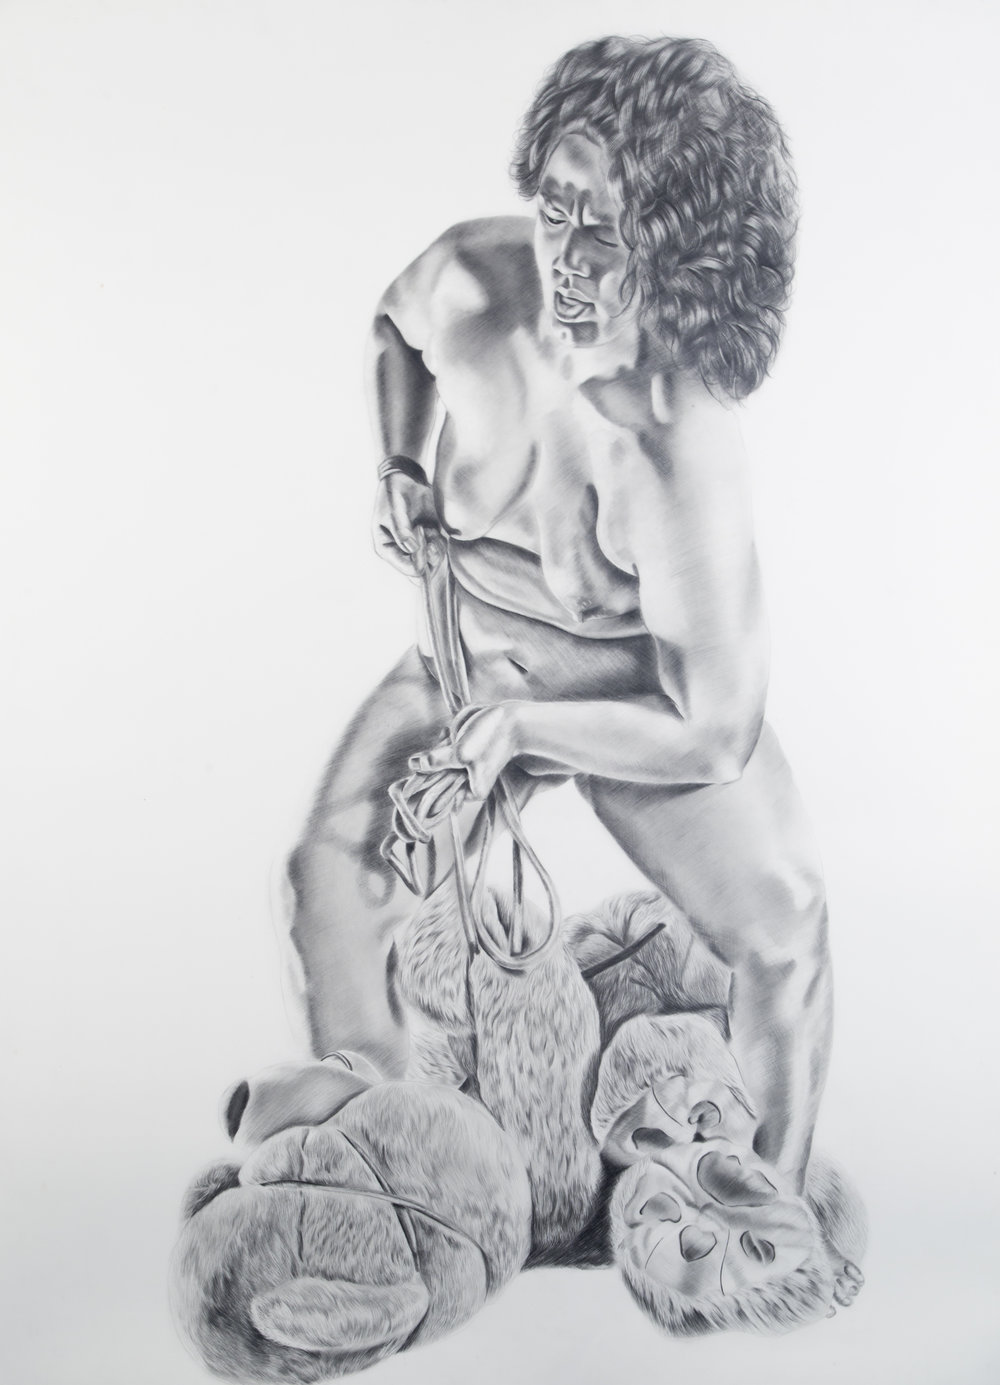 Untititled, 50.25 x 37.5 inches, graphite on paper. 2016